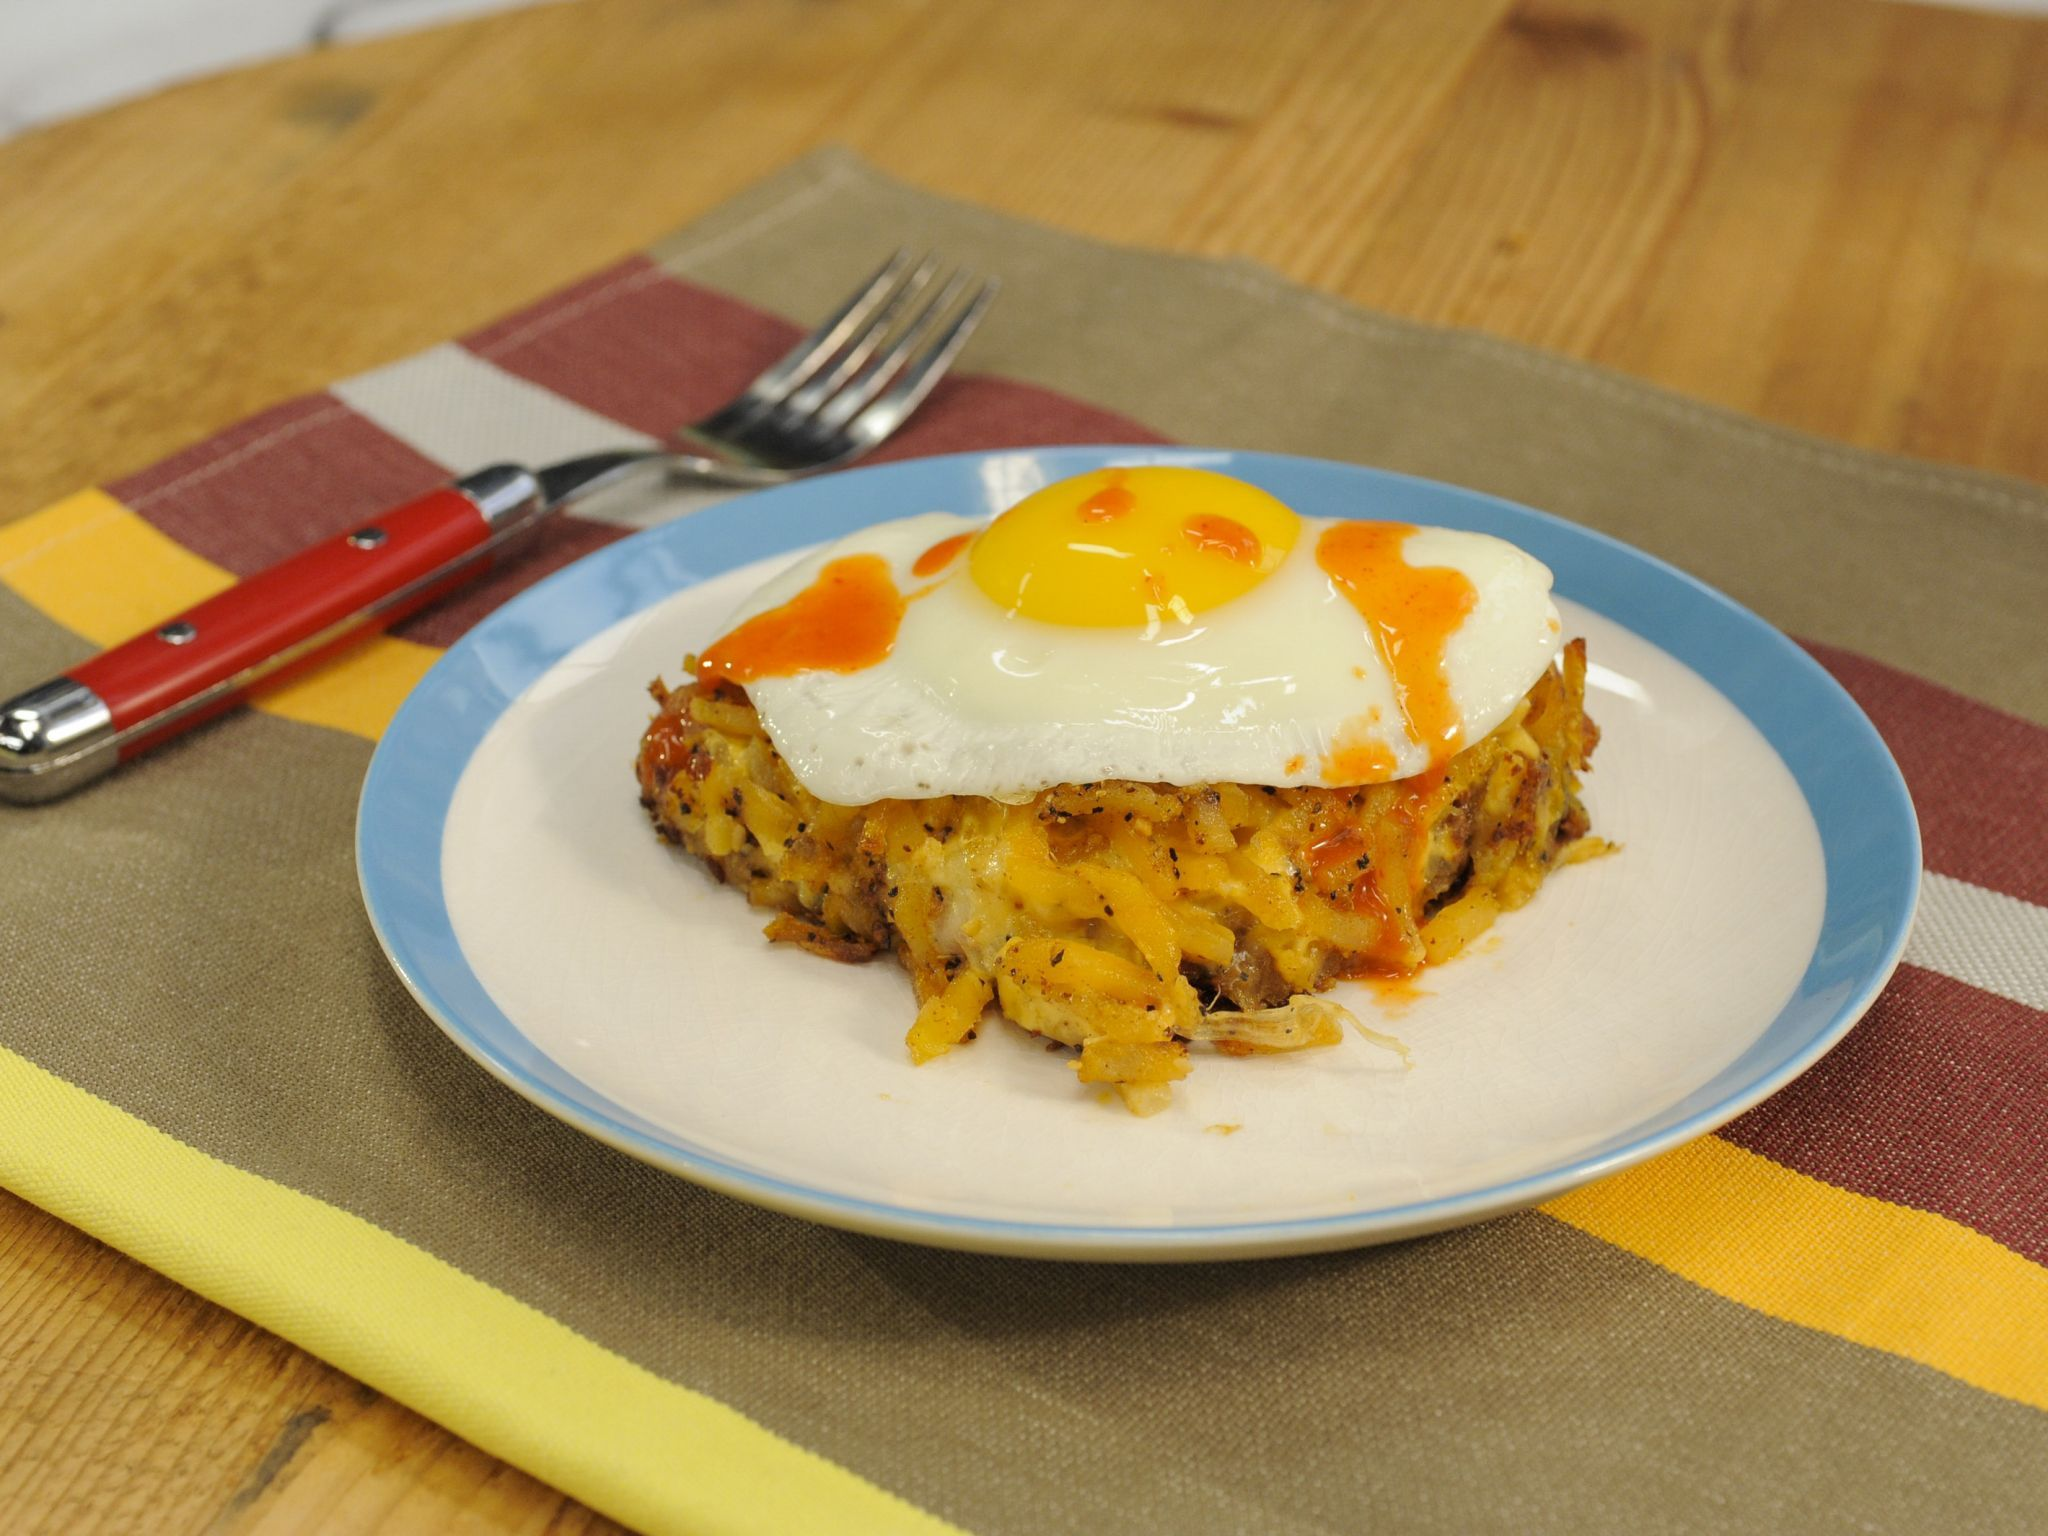 Sunnys easy breakfast cottage pie recipe sunny anderson sunnys easy breakfast cottage pie forumfinder Images